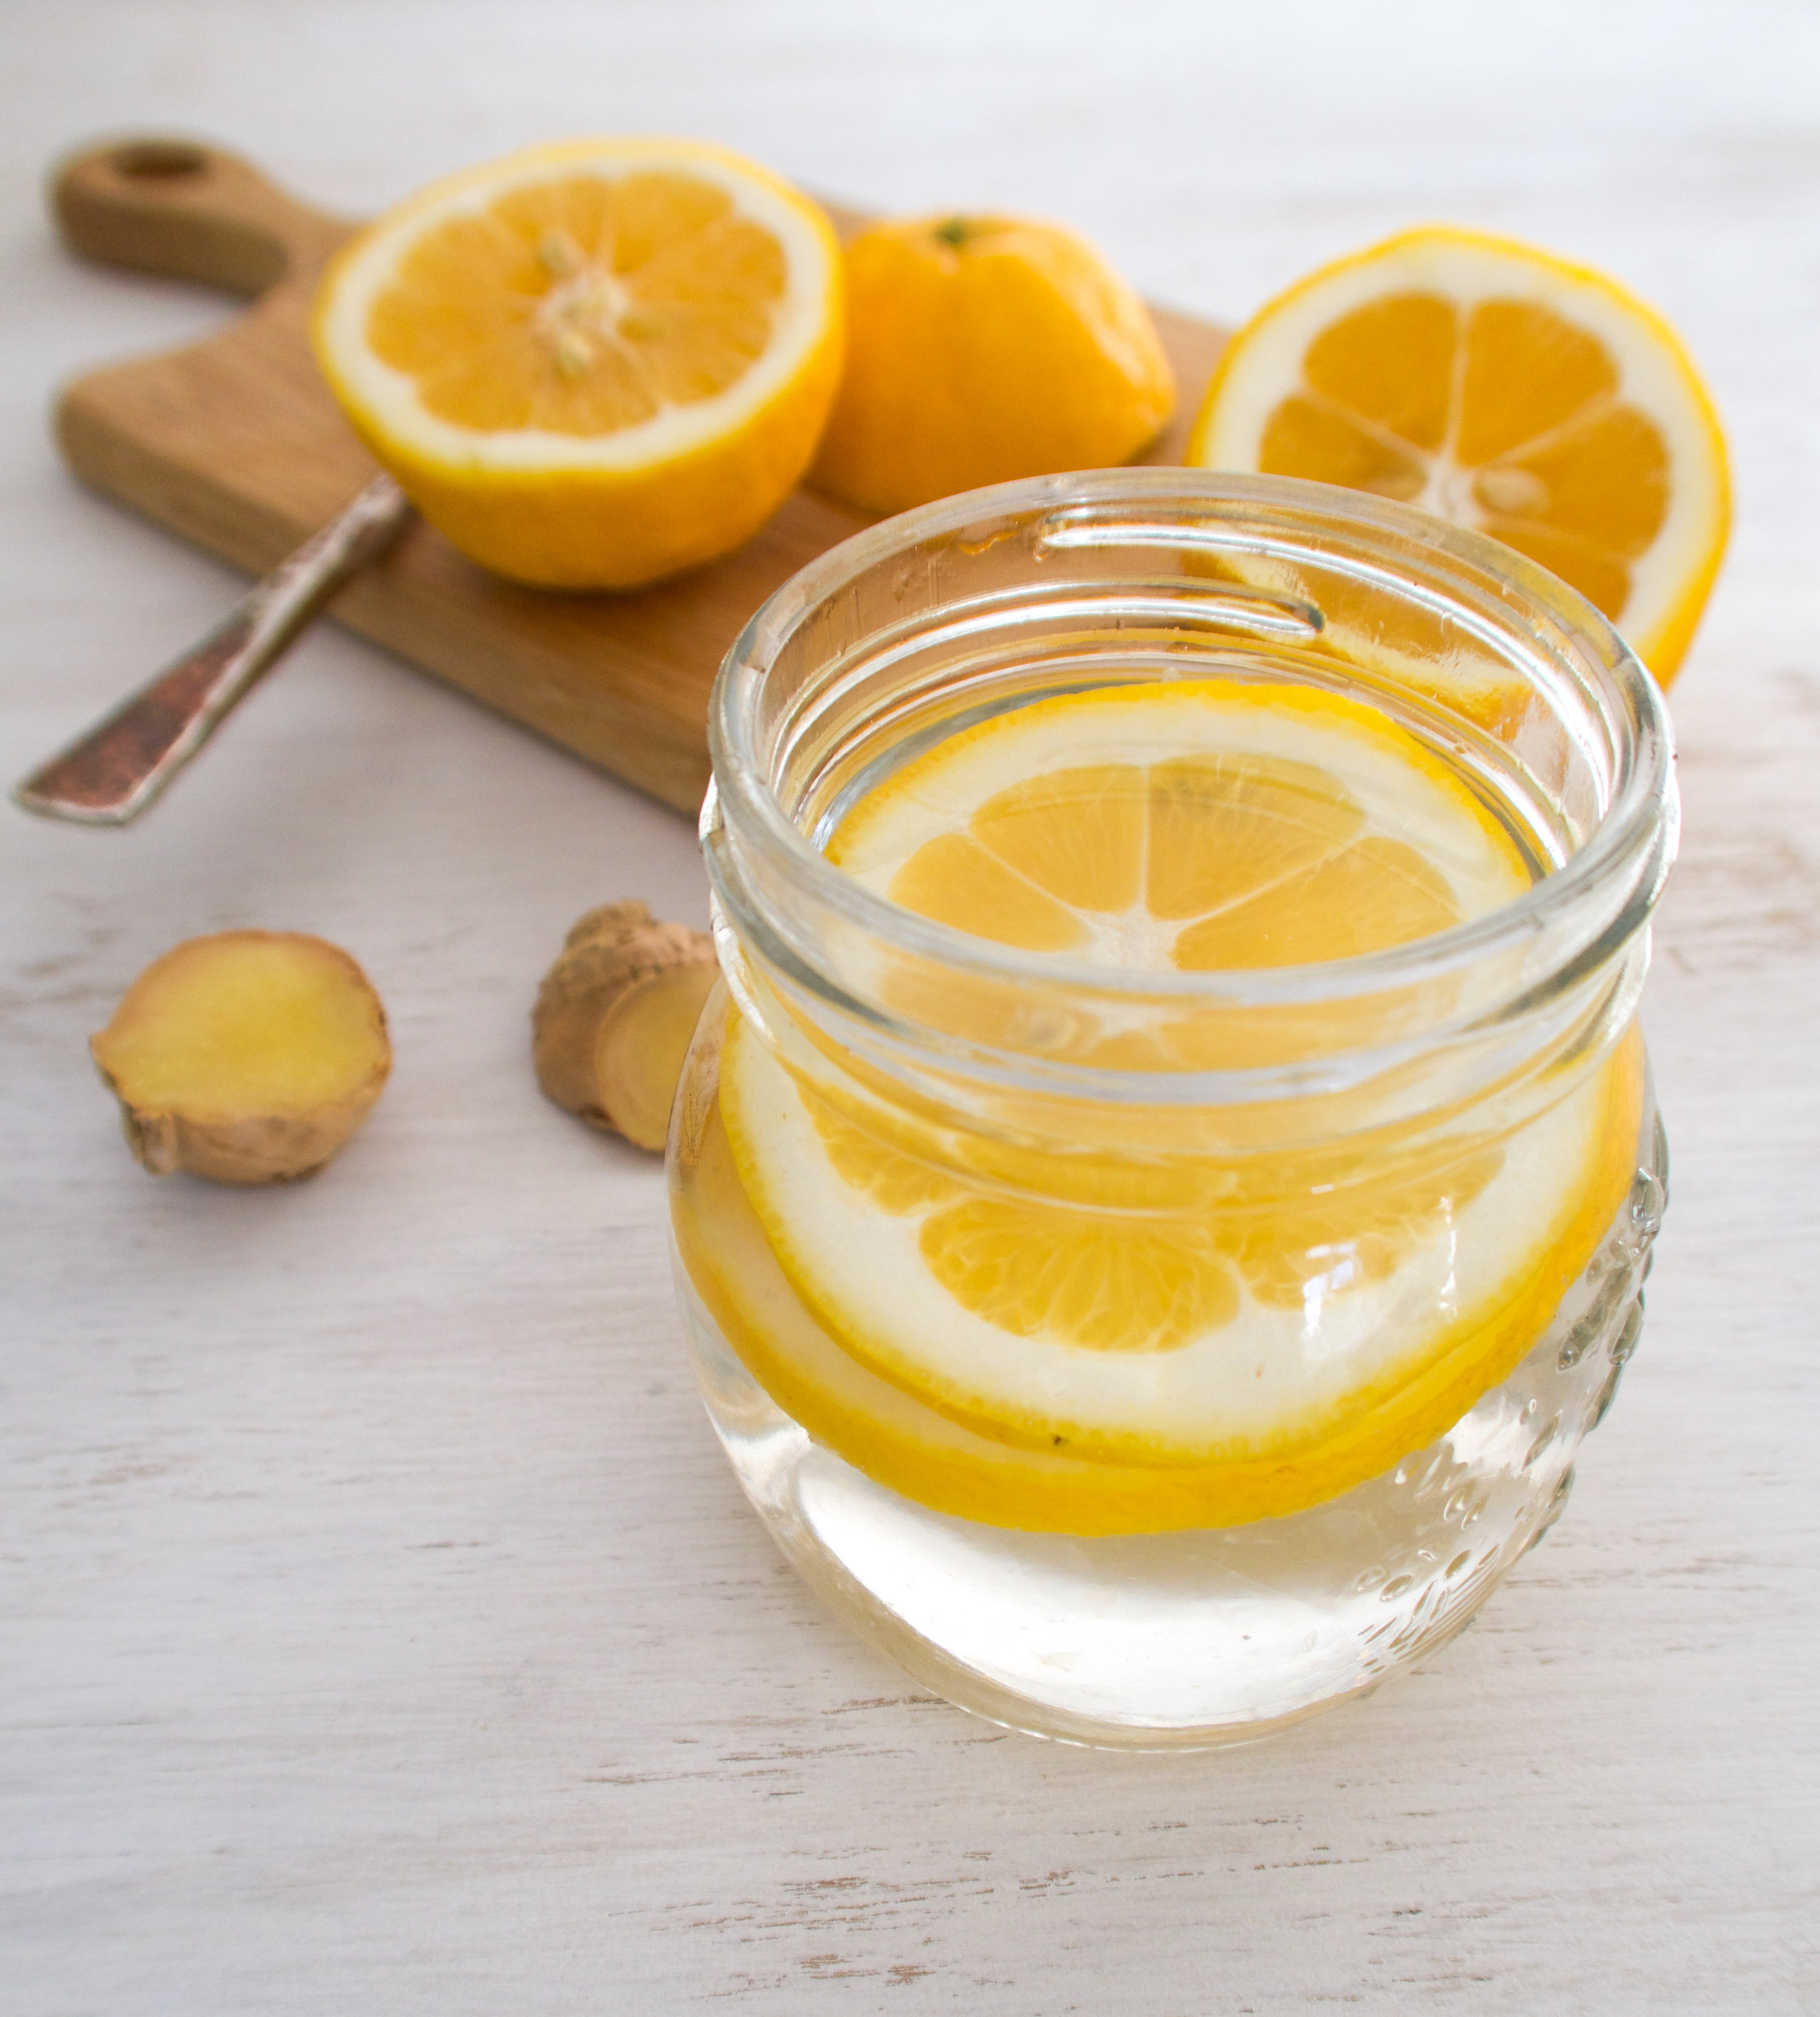 Hot water with lemon and ginger